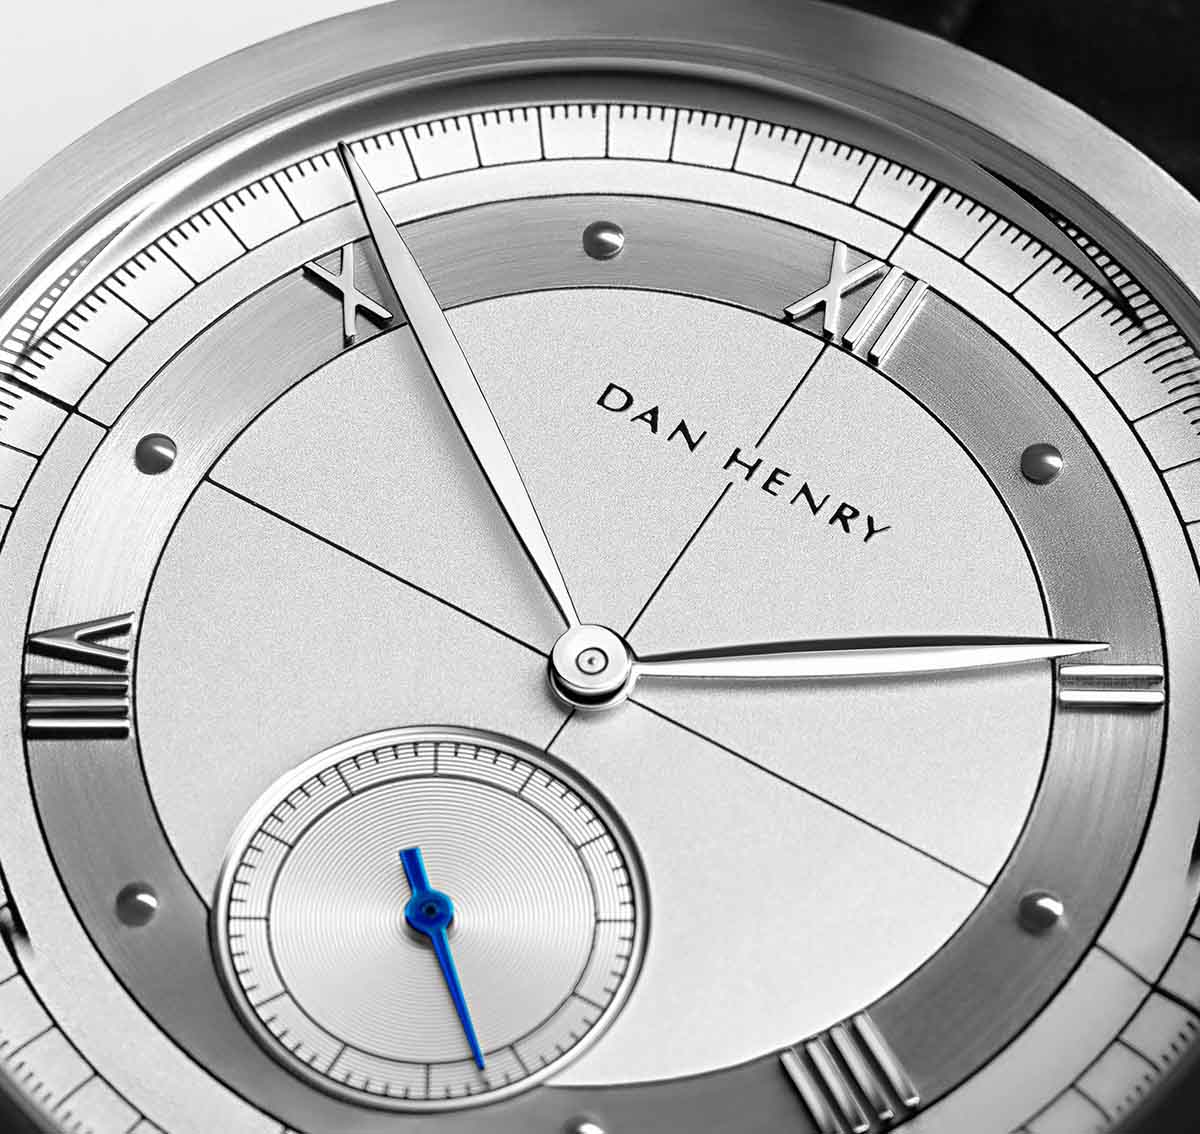 <h3>Subdial</h3>Silver Guilloché subdial with blue hands